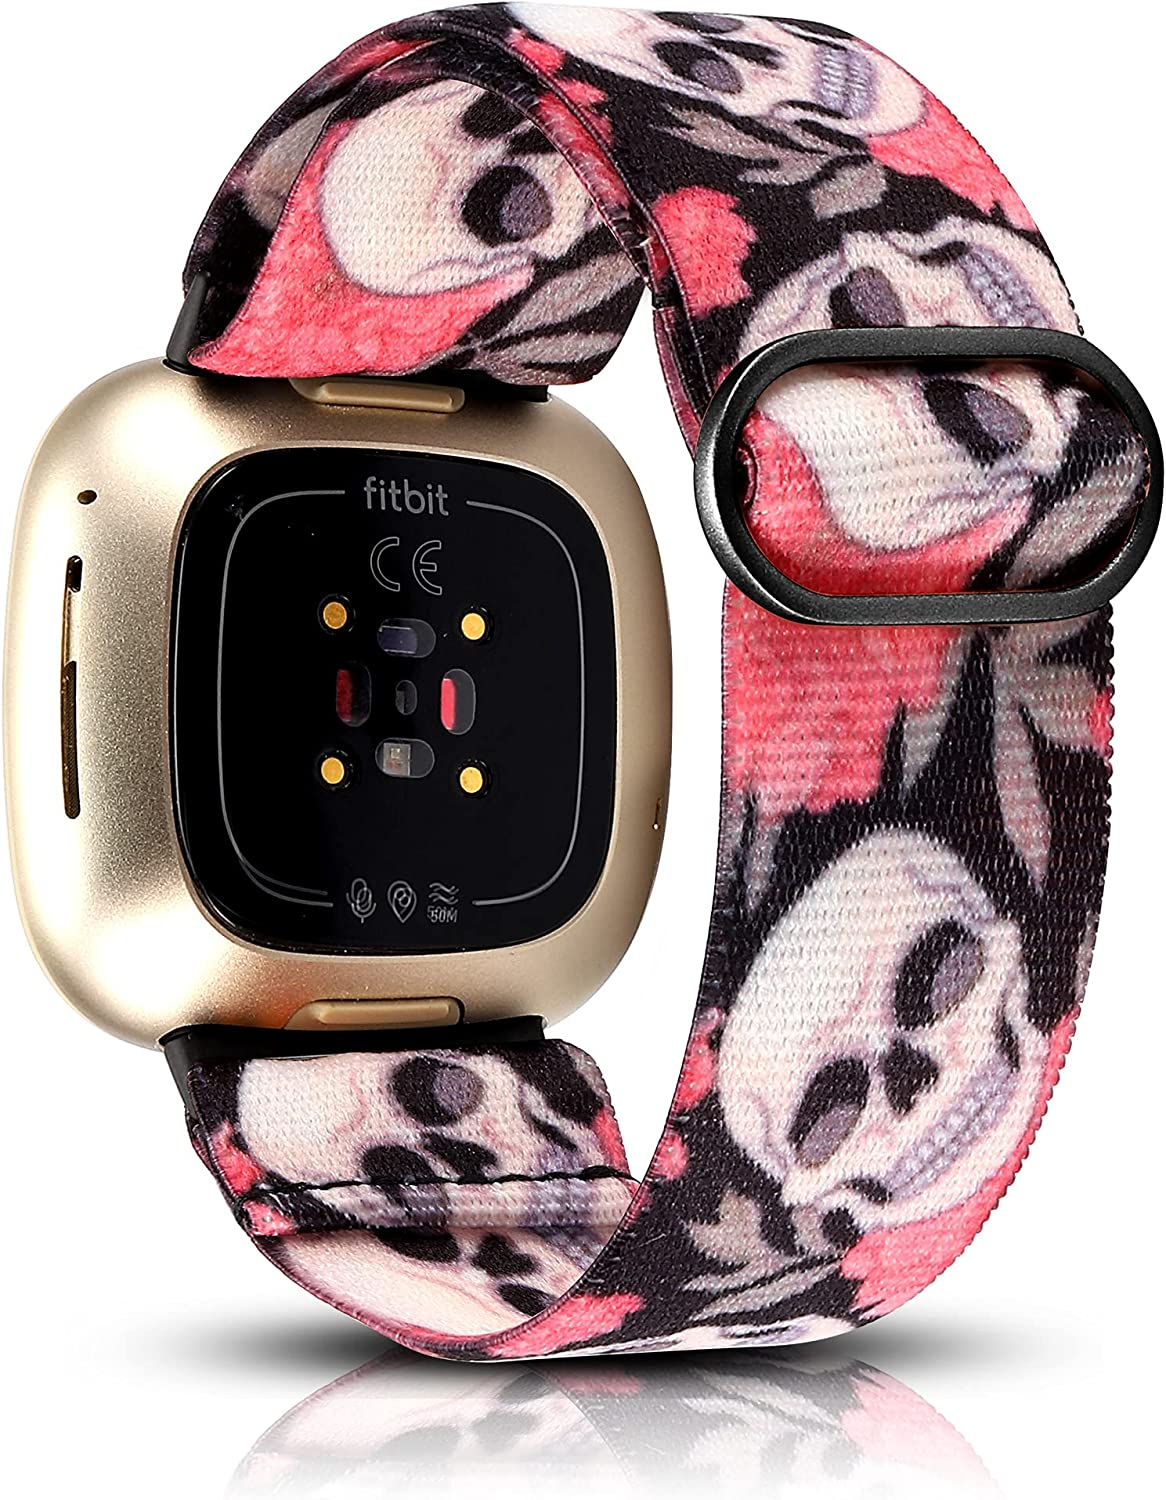 TOYOUTHS Compatible with Fitbit Versa 3 Bands Elastic Replacement for Fitbit Sense Adjustable Nylon Fabric Strap Scrunchies Solo Loop Bracelet Stretchy Wristband Women Men